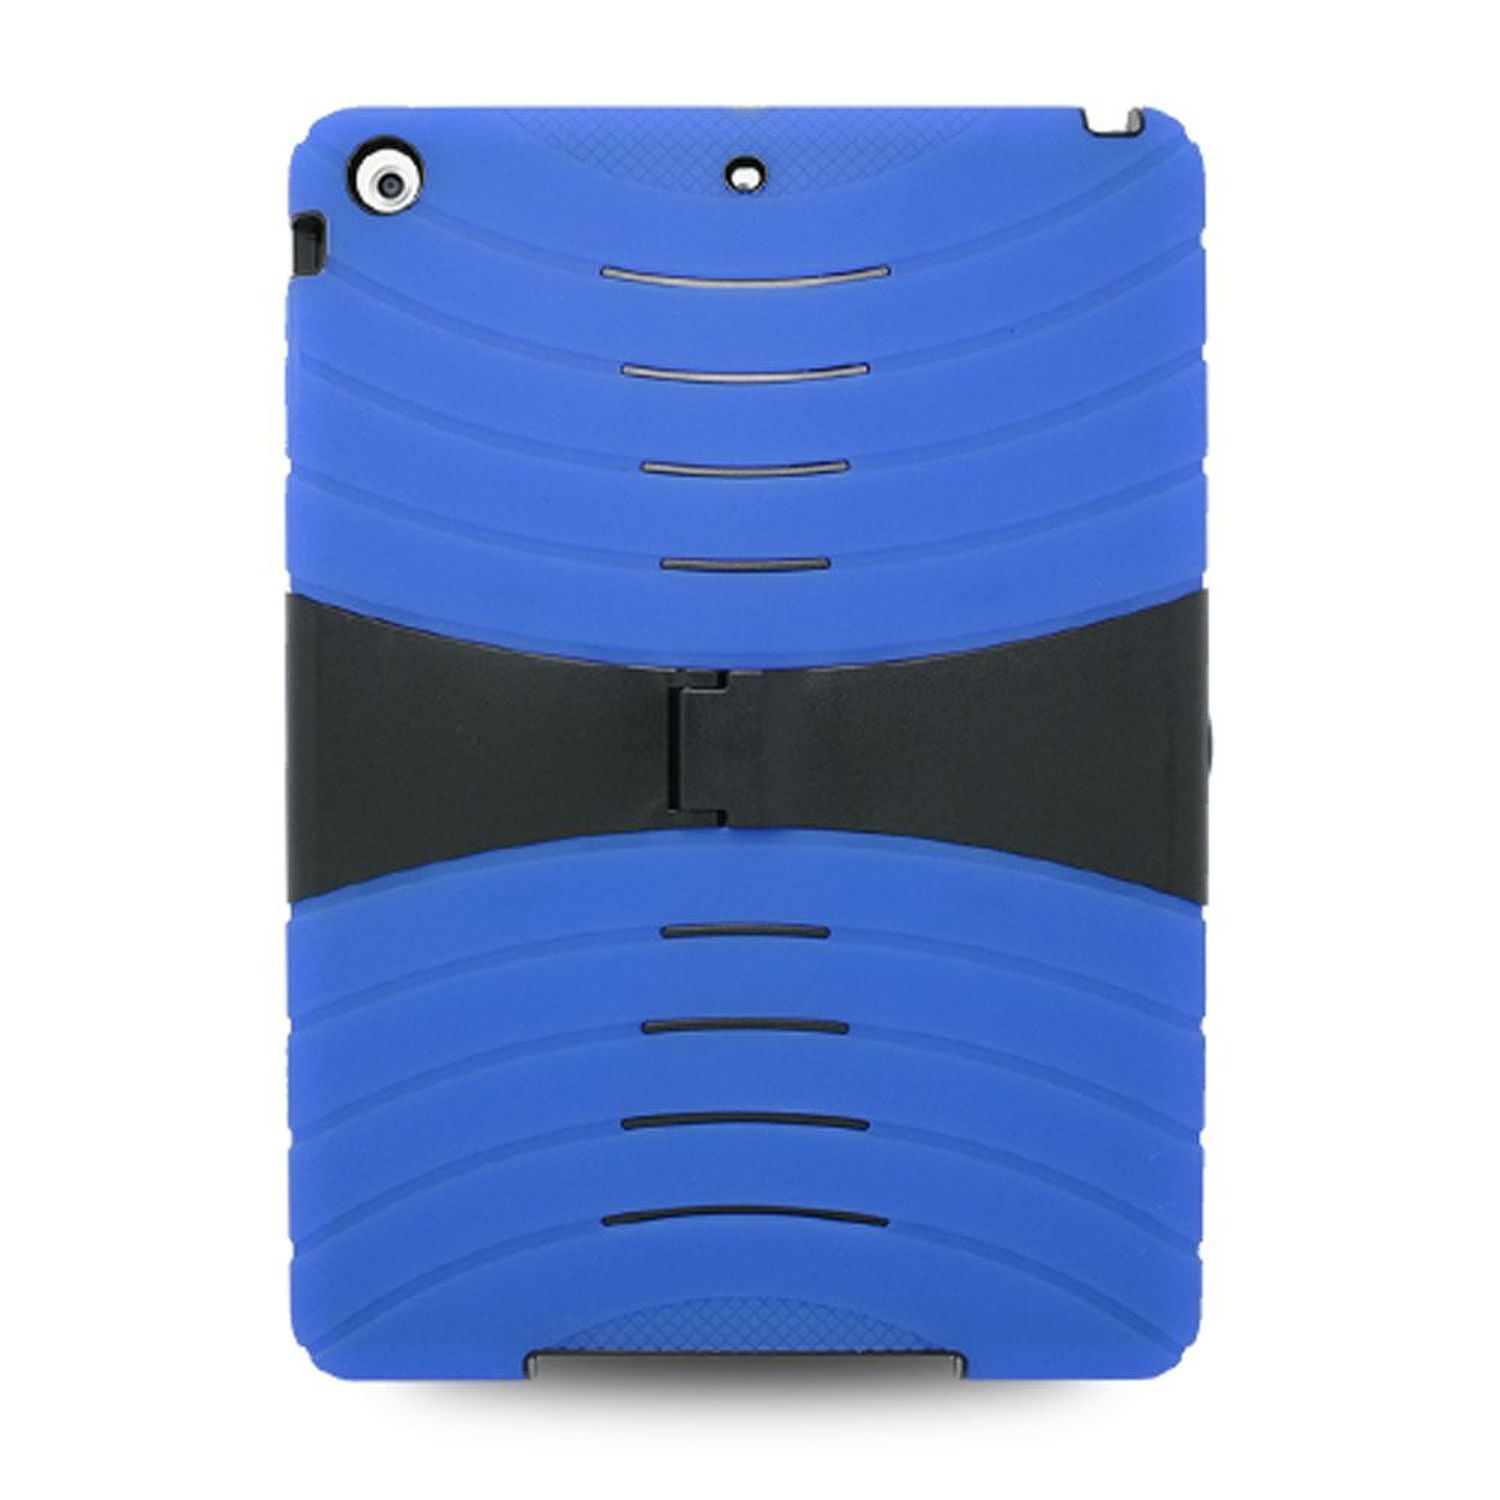 iPad Air Cover Case, by Insten Dual Layer [Shock Absorbing] Hybrid Stand Rubber Silicone/Plastic Cover Case For Apple iPad Air, Blue/Black